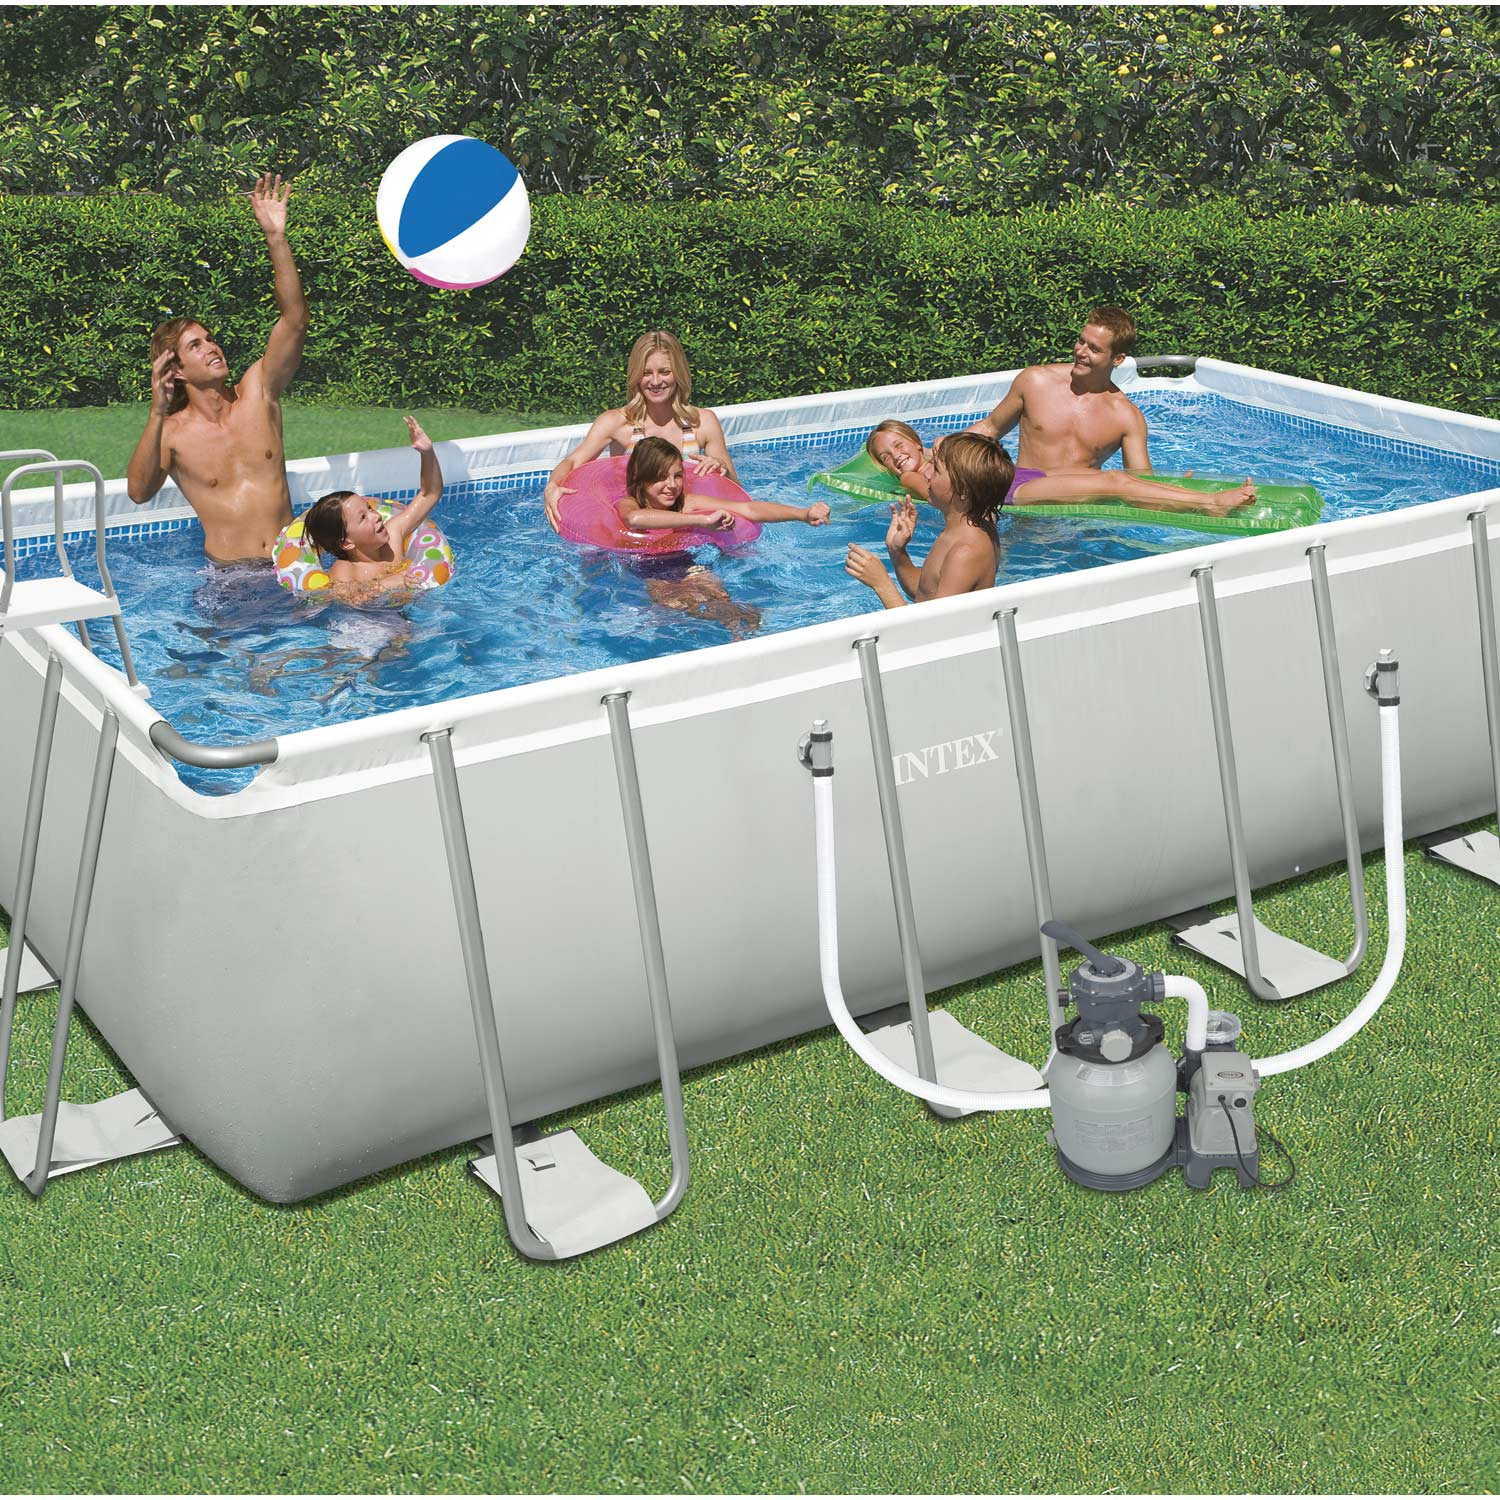 Piscine hors sol autoportante tubulaire ultra silver intex for Piscine hors sol autoportee